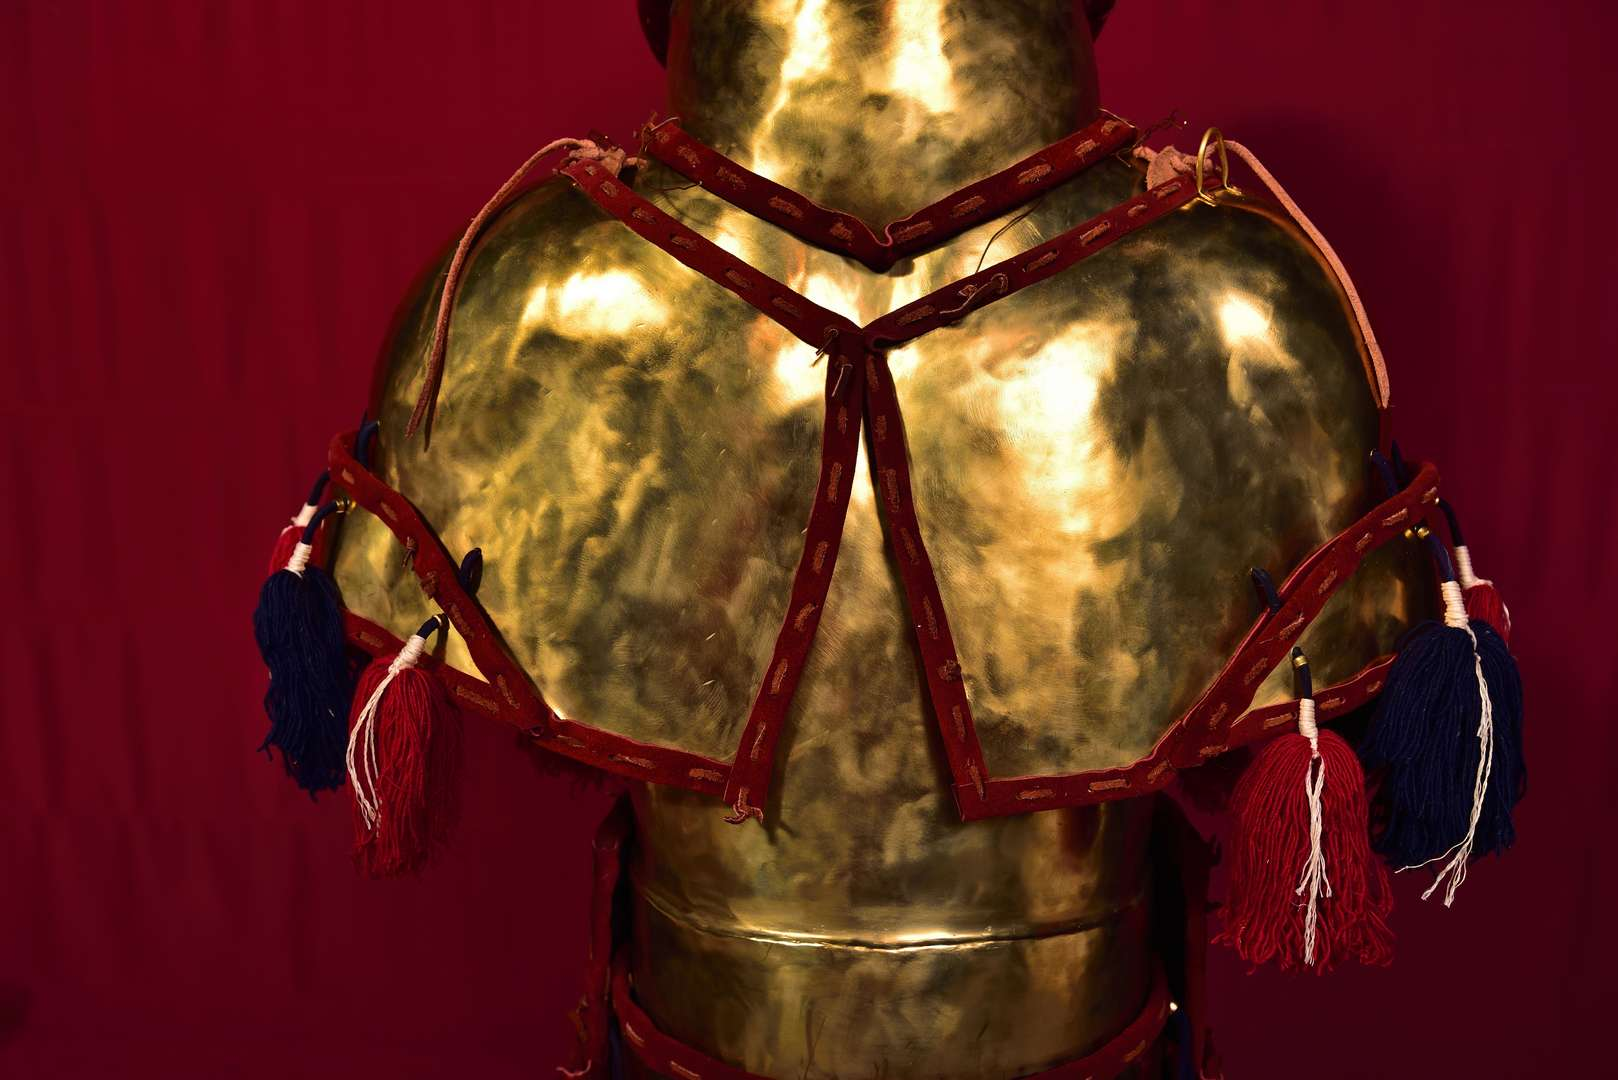 Mycenaean Armor of the 15th century BC